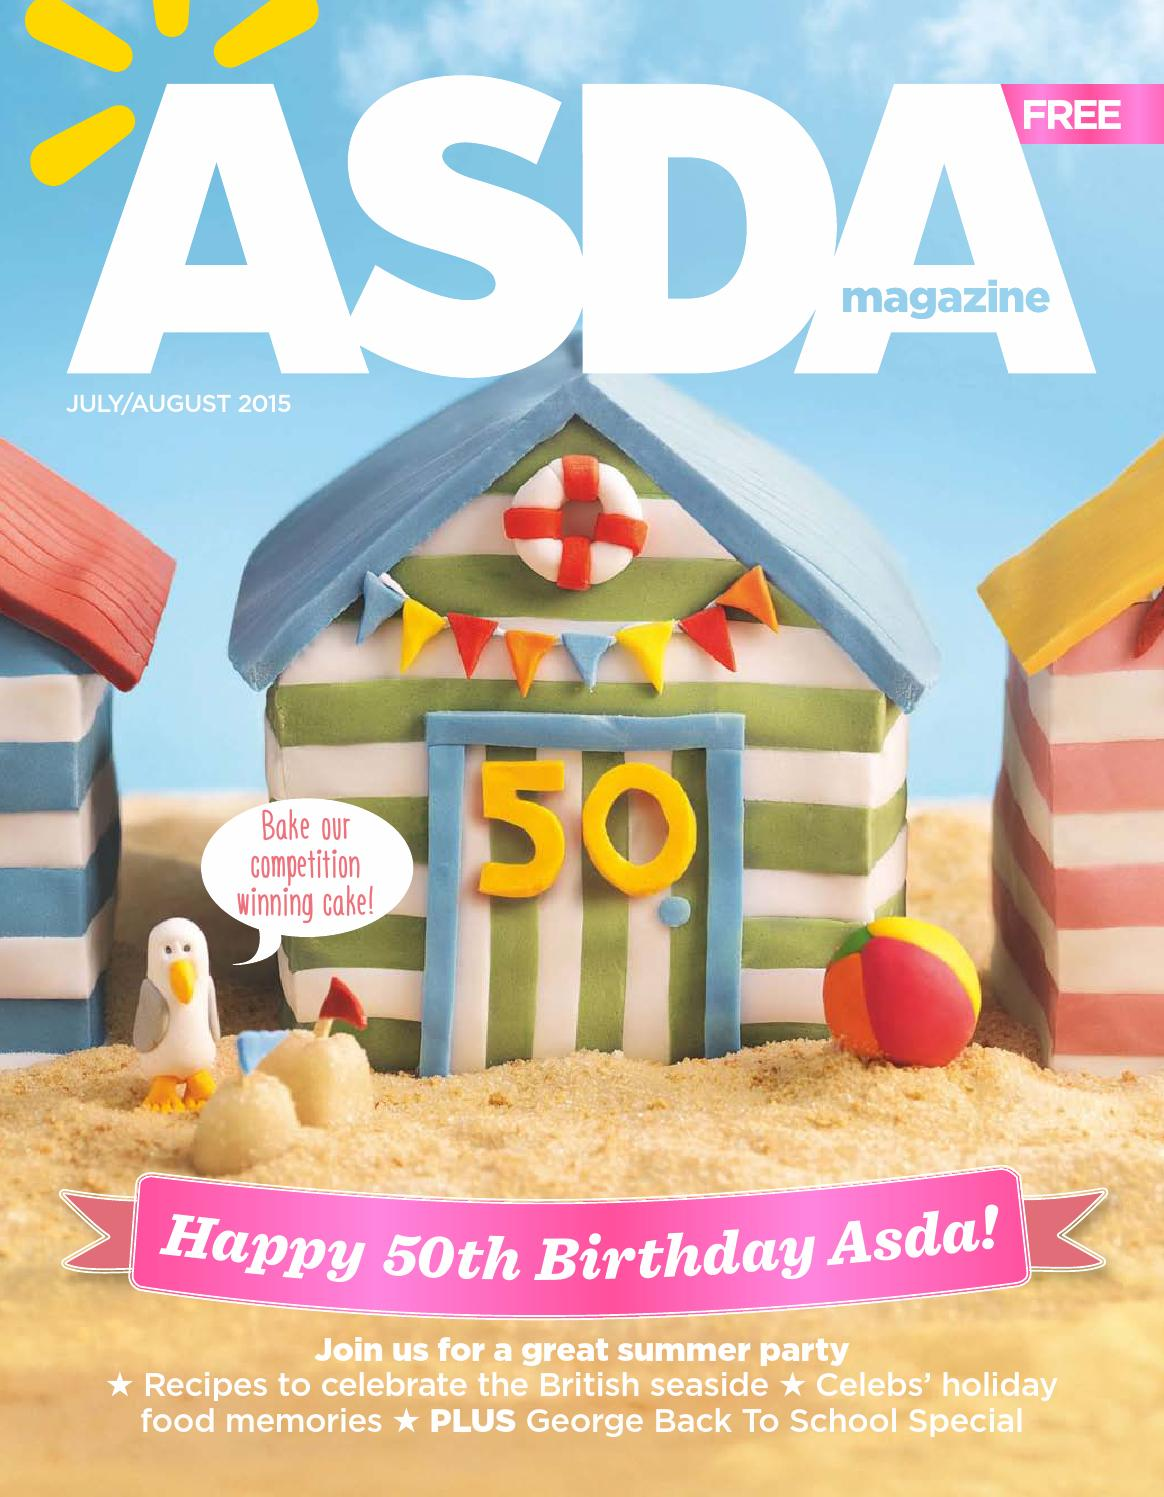 Asda Design Your Own Photo Cake : Asda Magazine - July/August 2015 by Asda - issuu